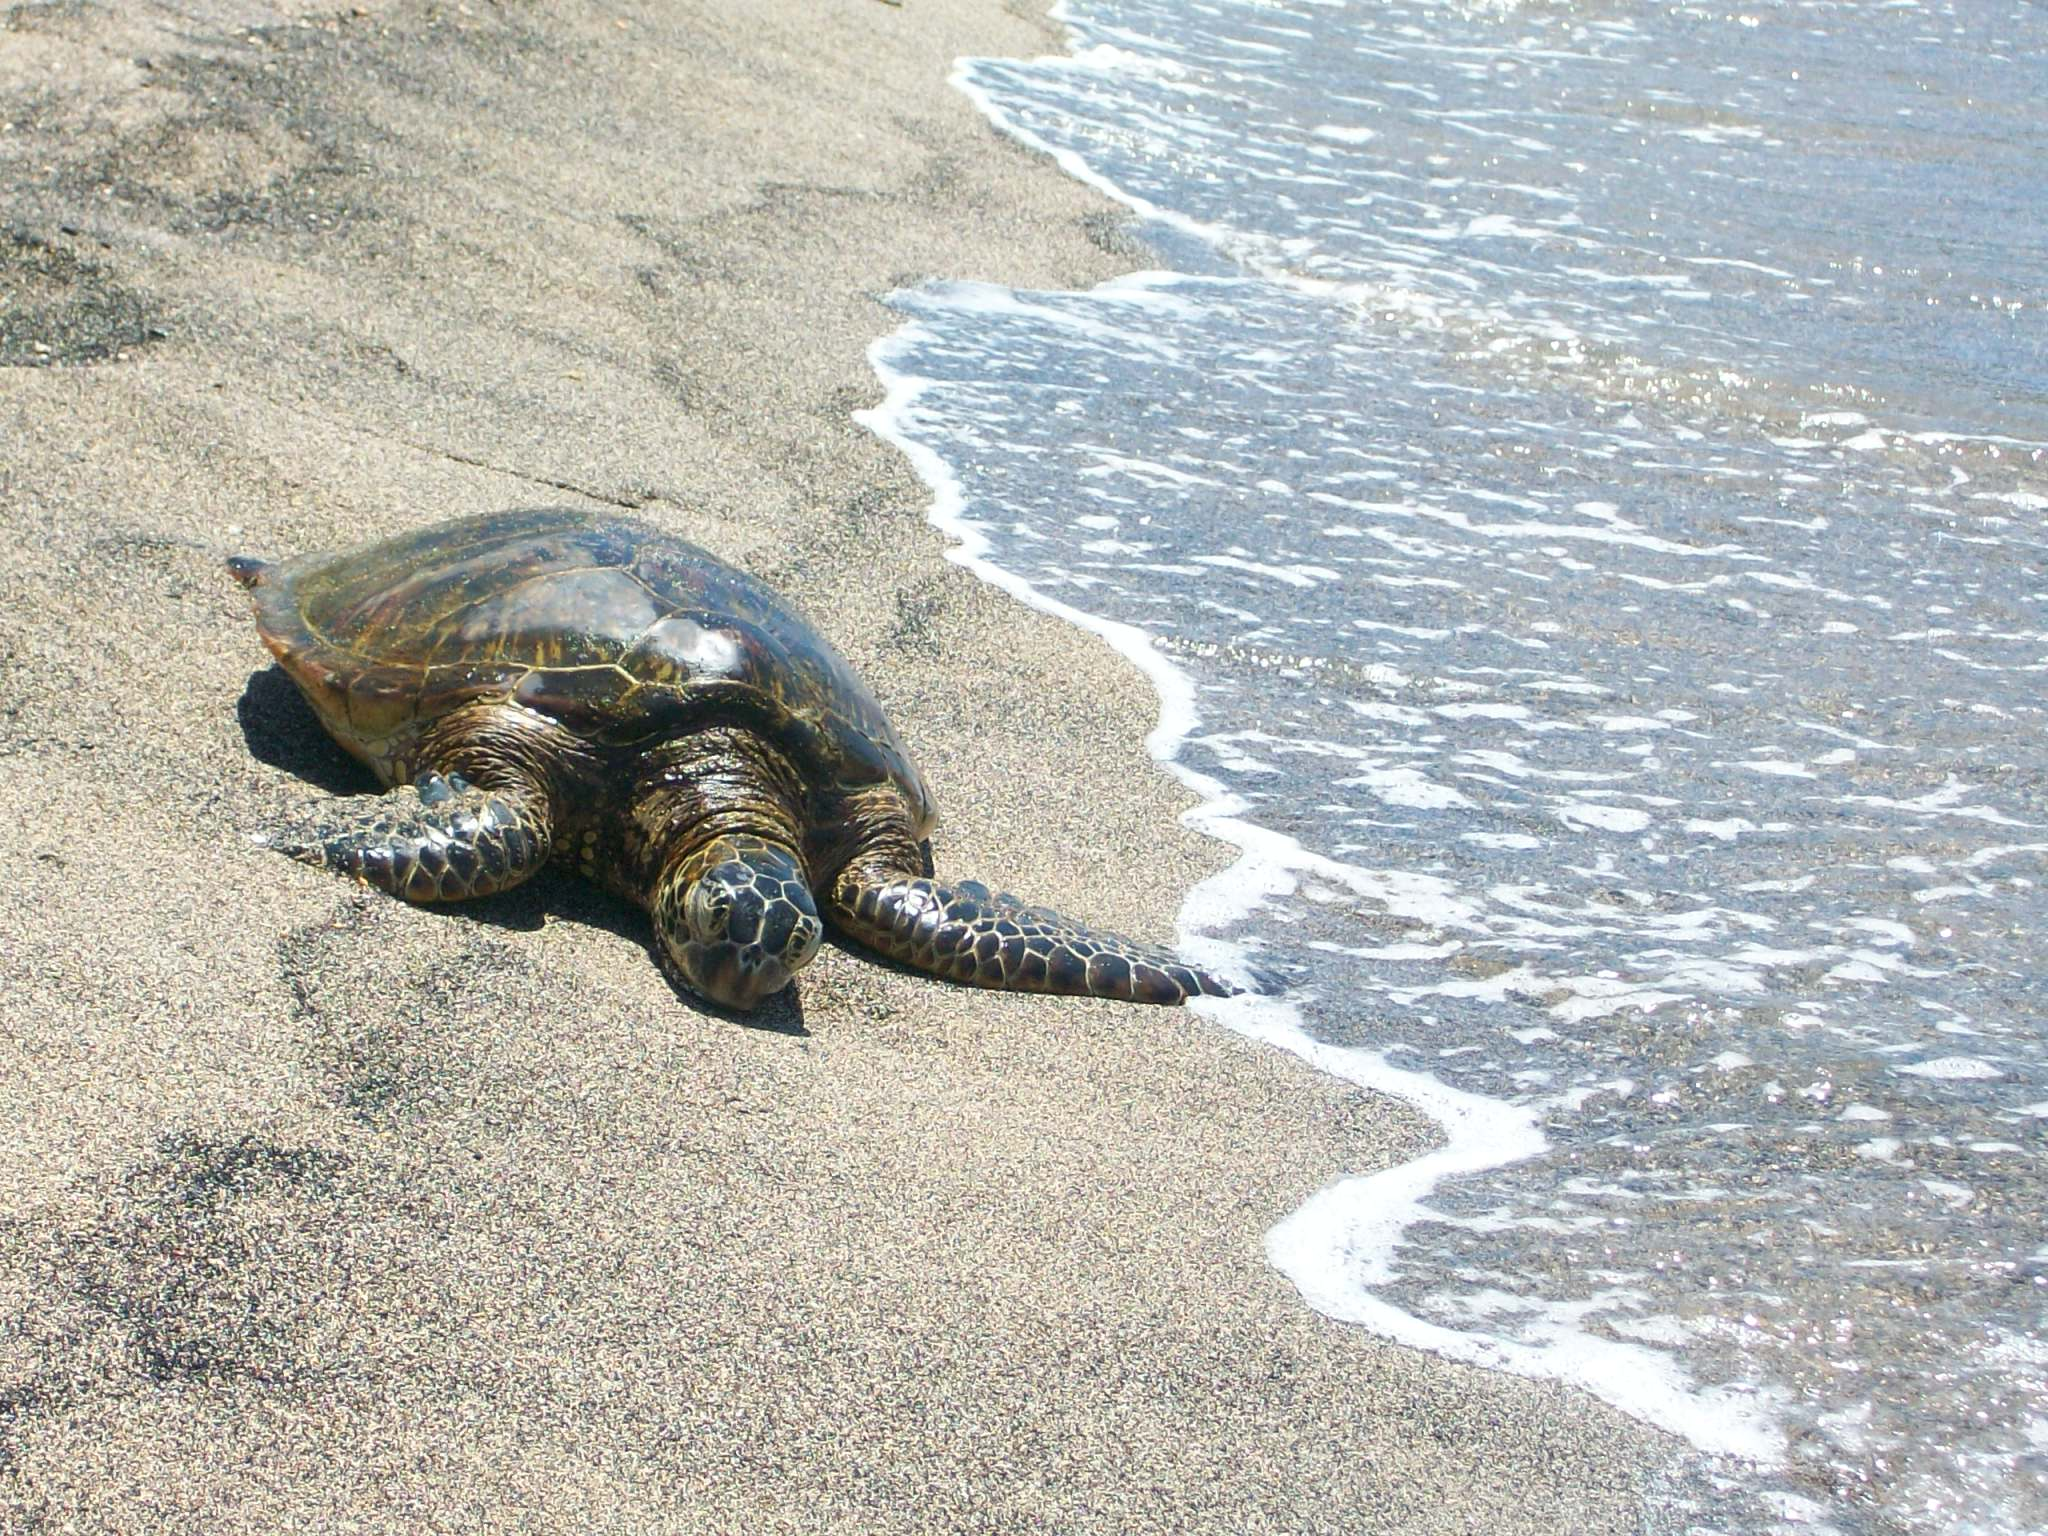 One of the local sea turtles.